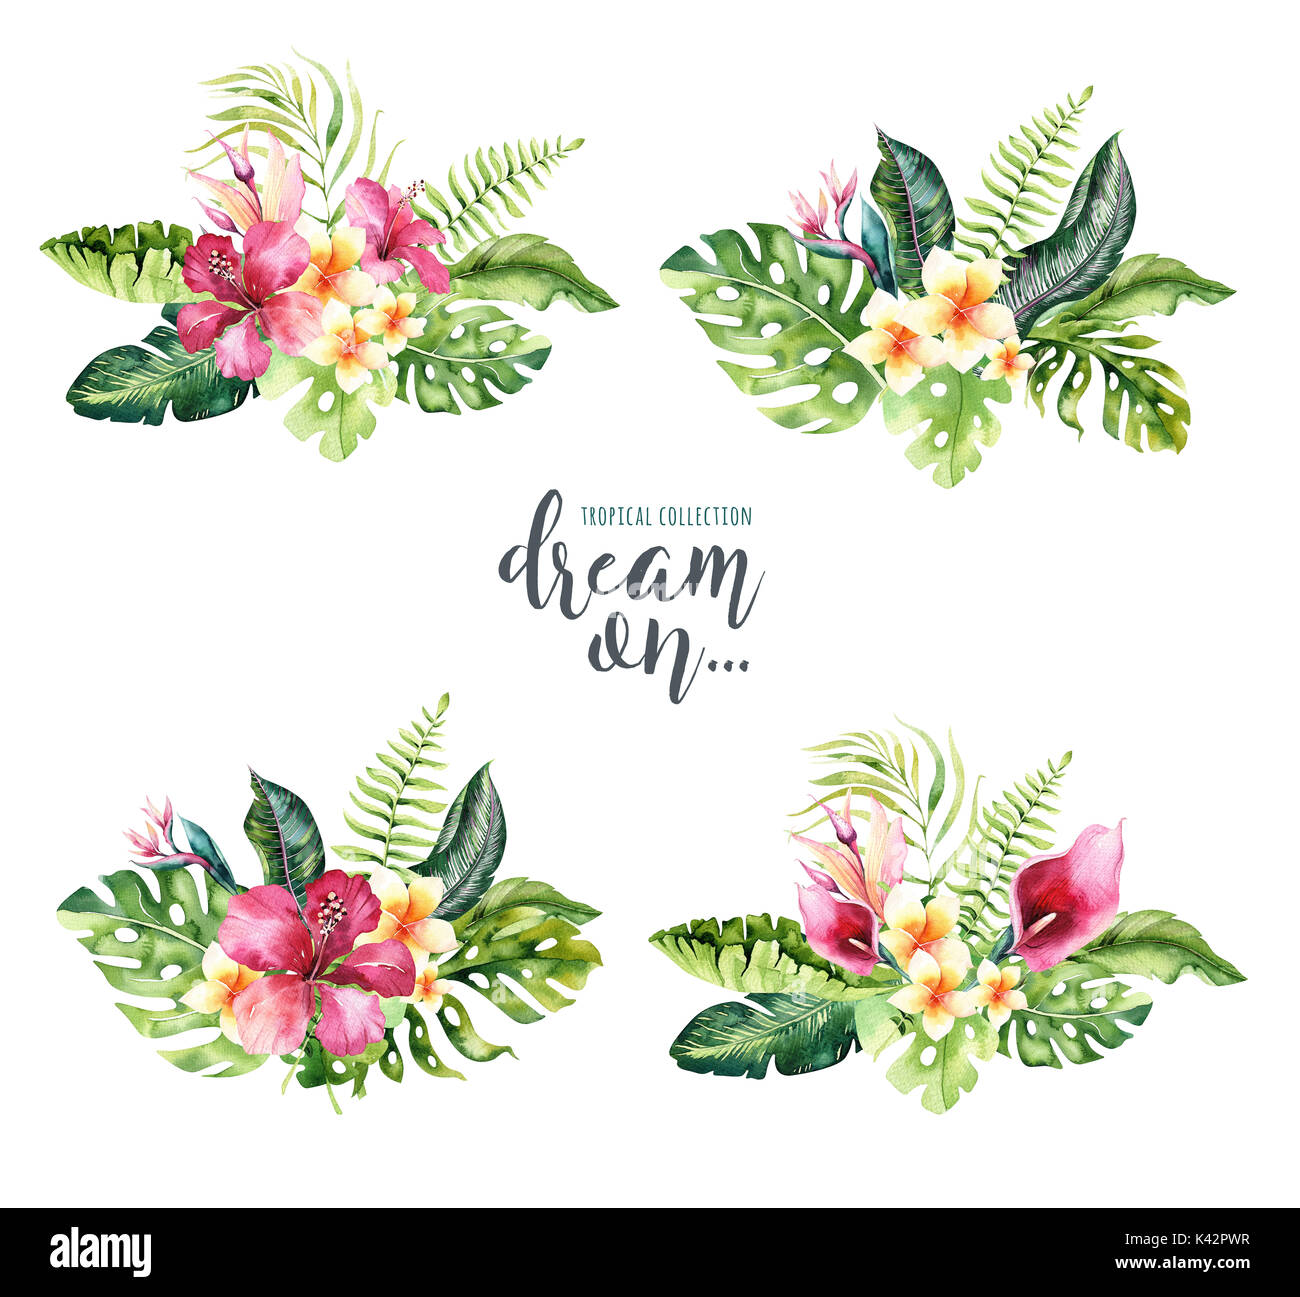 Hand drawn watercolor tropical flower bouquets exotic palm leaves hand drawn watercolor tropical flower bouquets exotic palm leaves jungle tree brazil tropic botany elements and flowers perfect for fabric design izmirmasajfo Images